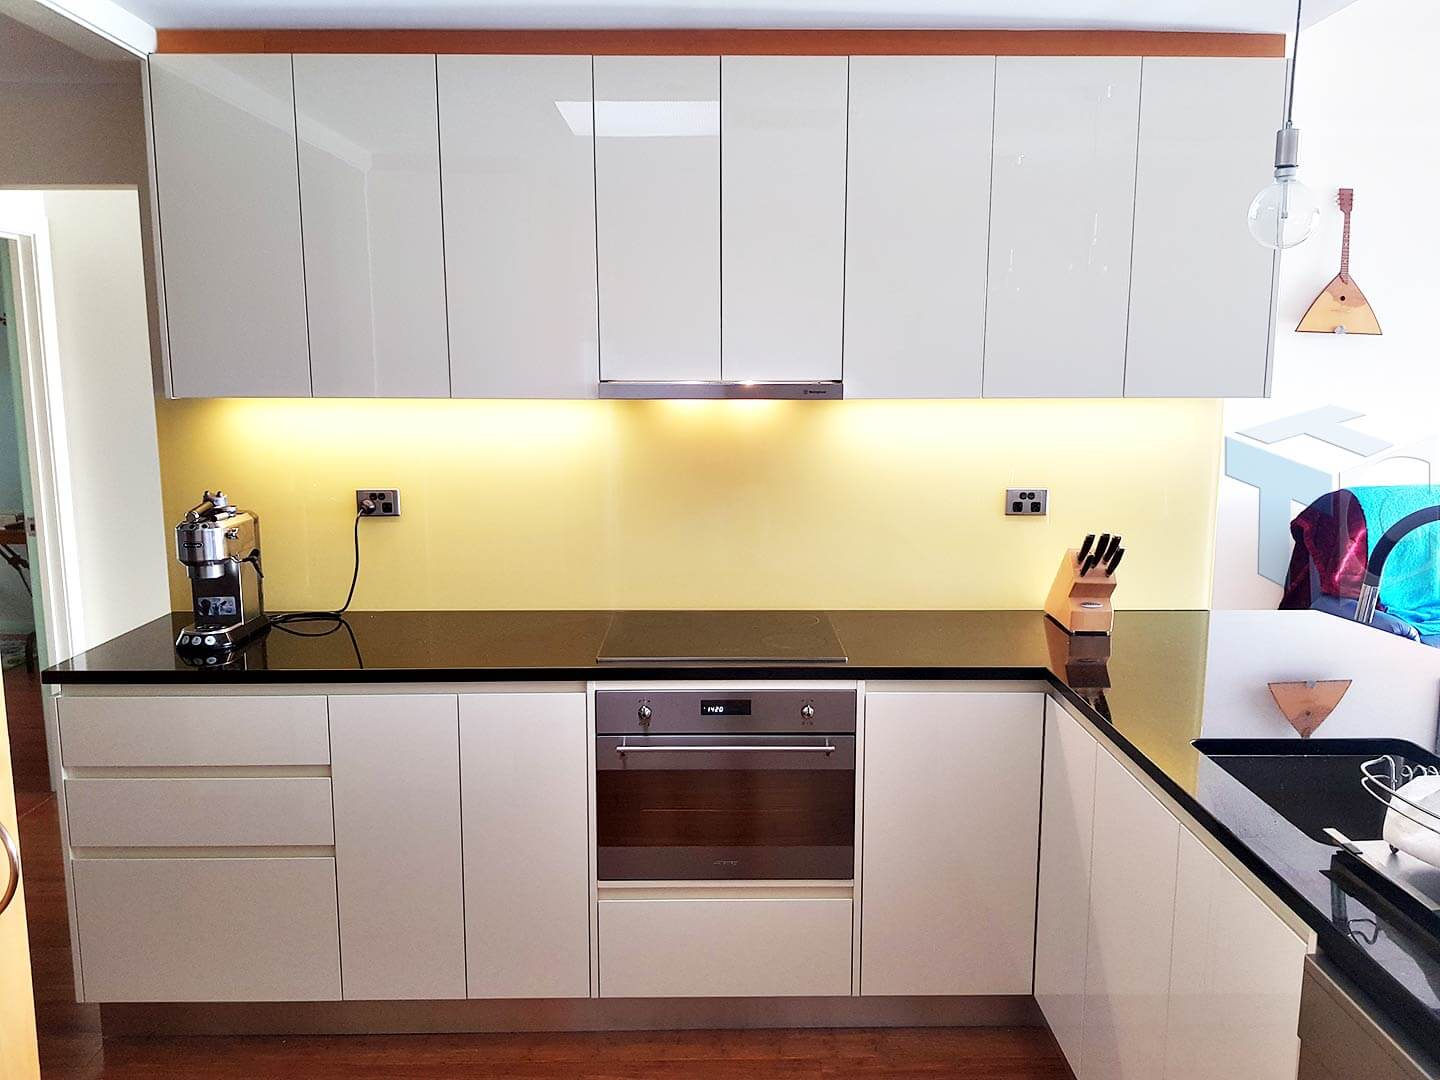 kitchen-front-view-oven-cooktop-yellow-splashback